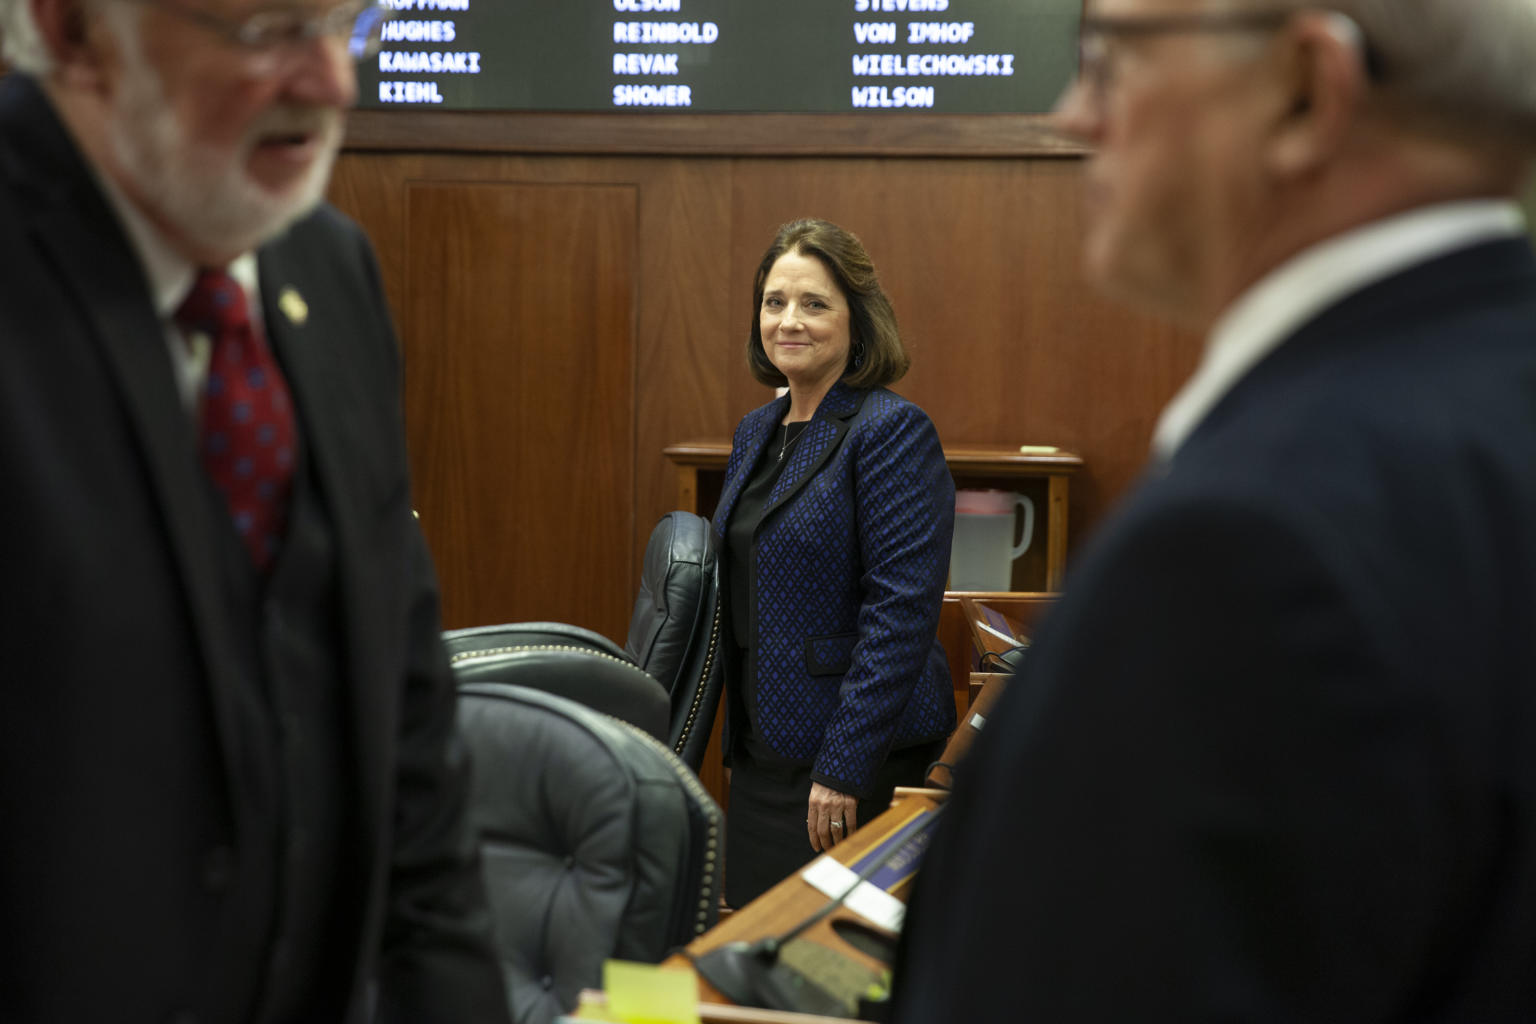 Senate votes to remove Reinbold as chair of Judiciary Committee - Alaska Public Media